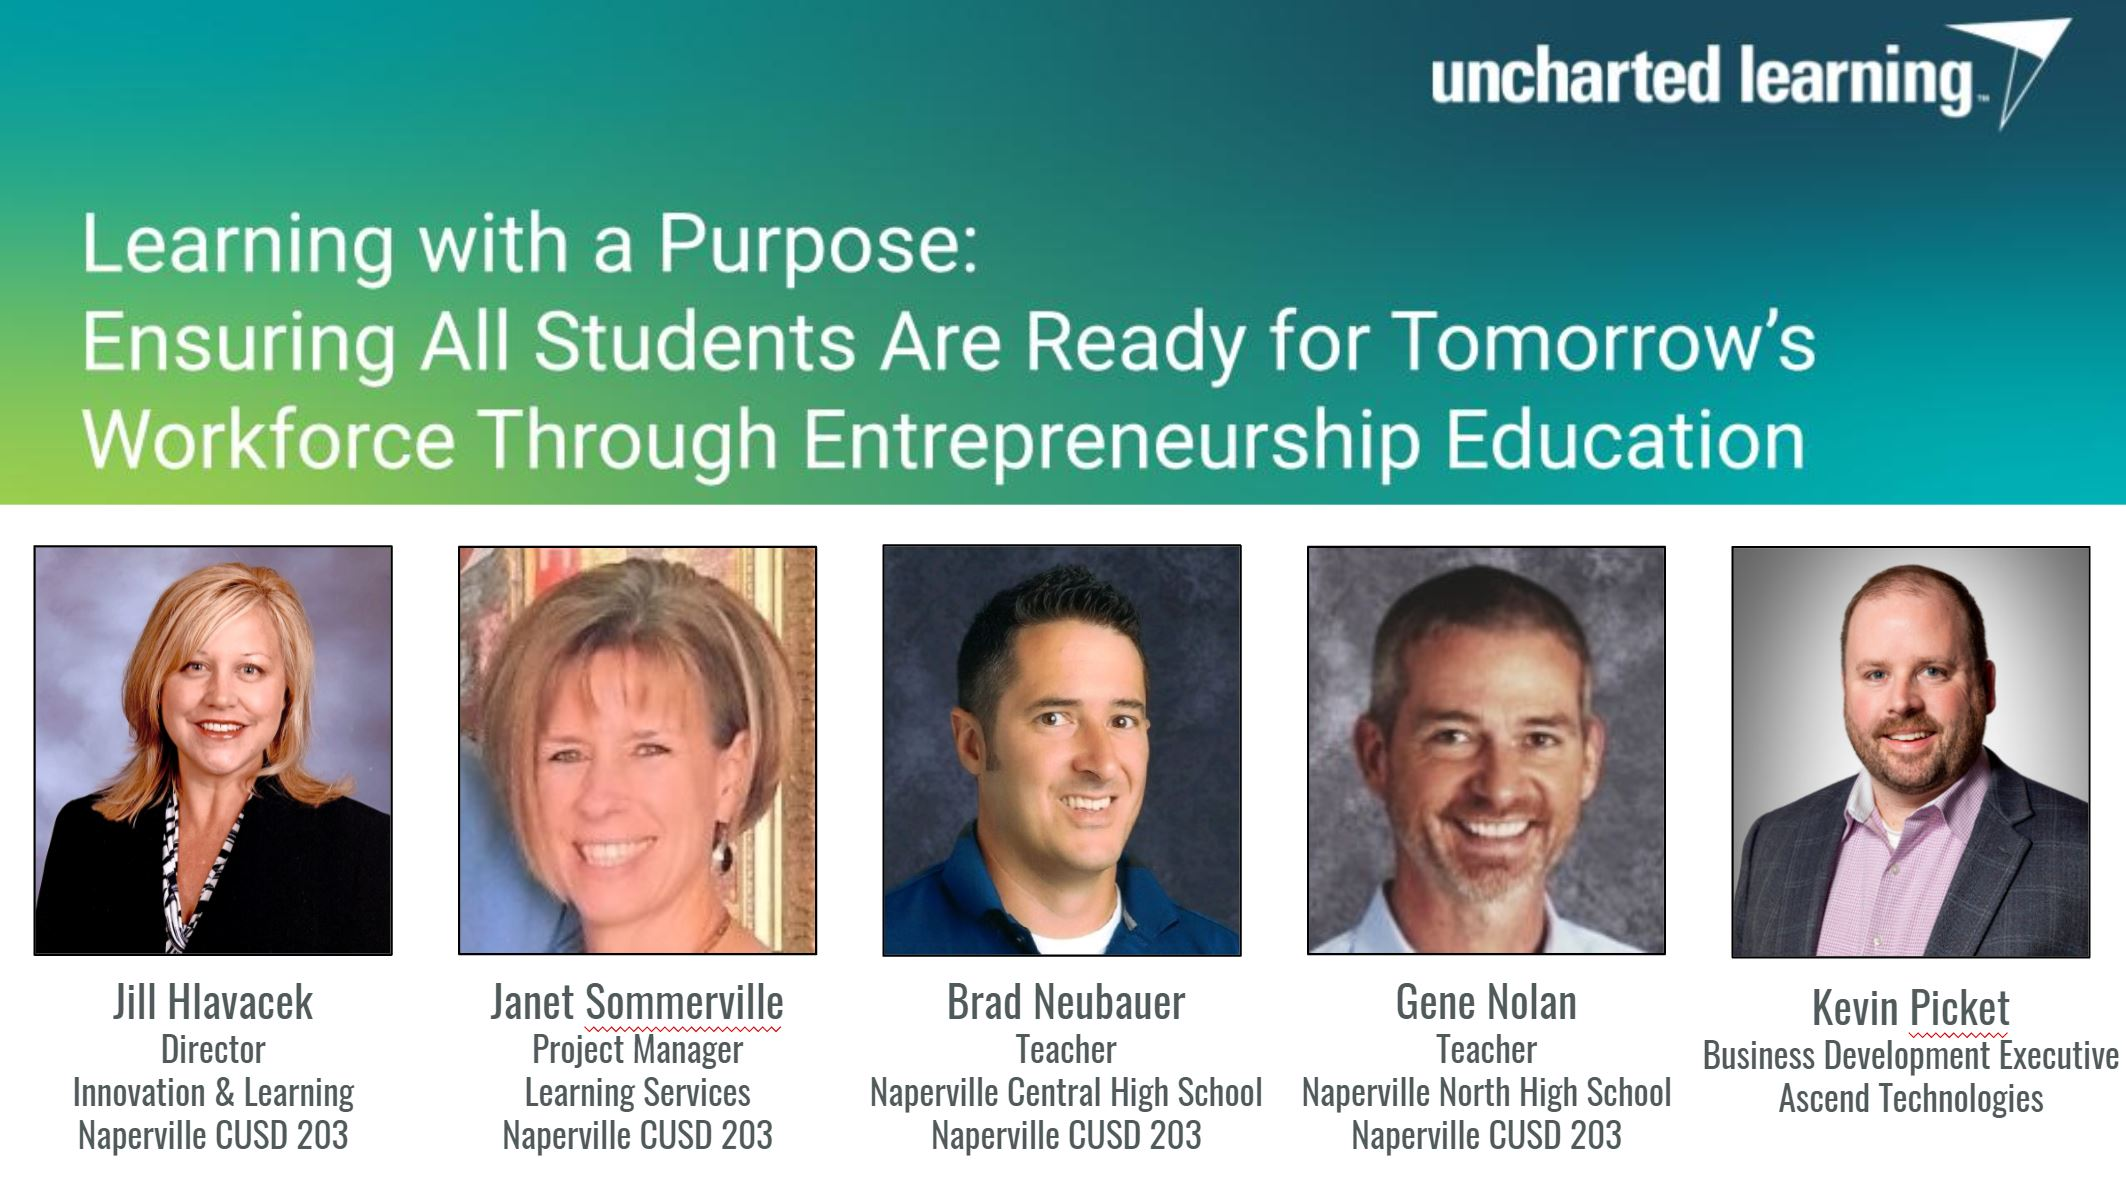 [WEBINAR] Learning With A Purpose: Ensuring All Students Are Ready for Tomorrow's Workforce Through Entrepreneurship Education